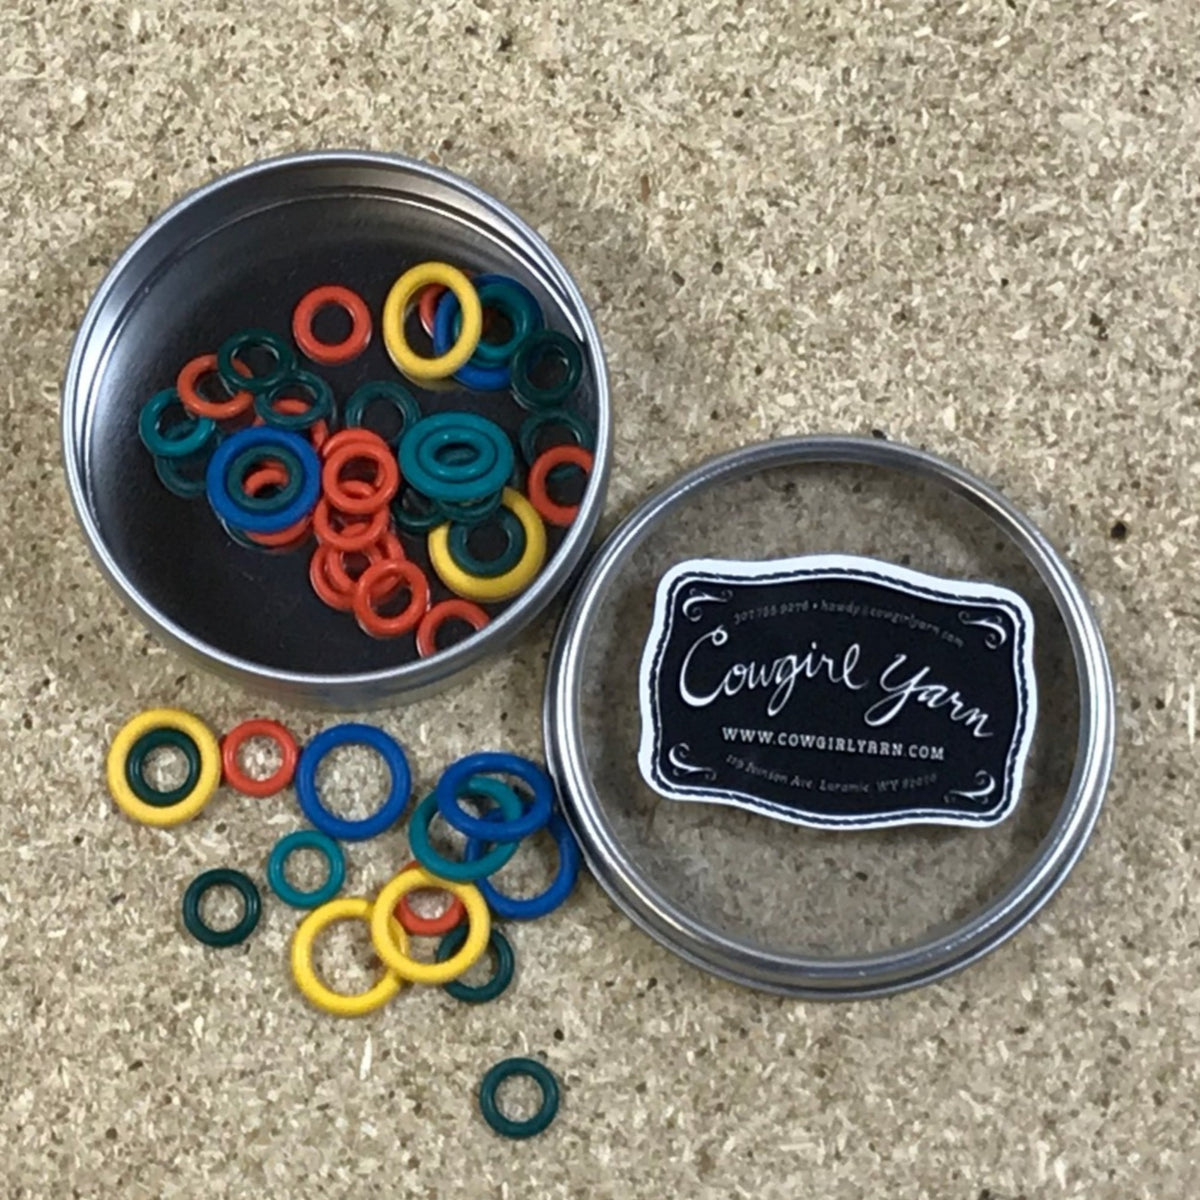 A Cowgirl Yarn branded metal tin filled with rubber stitch markers in multiple colors